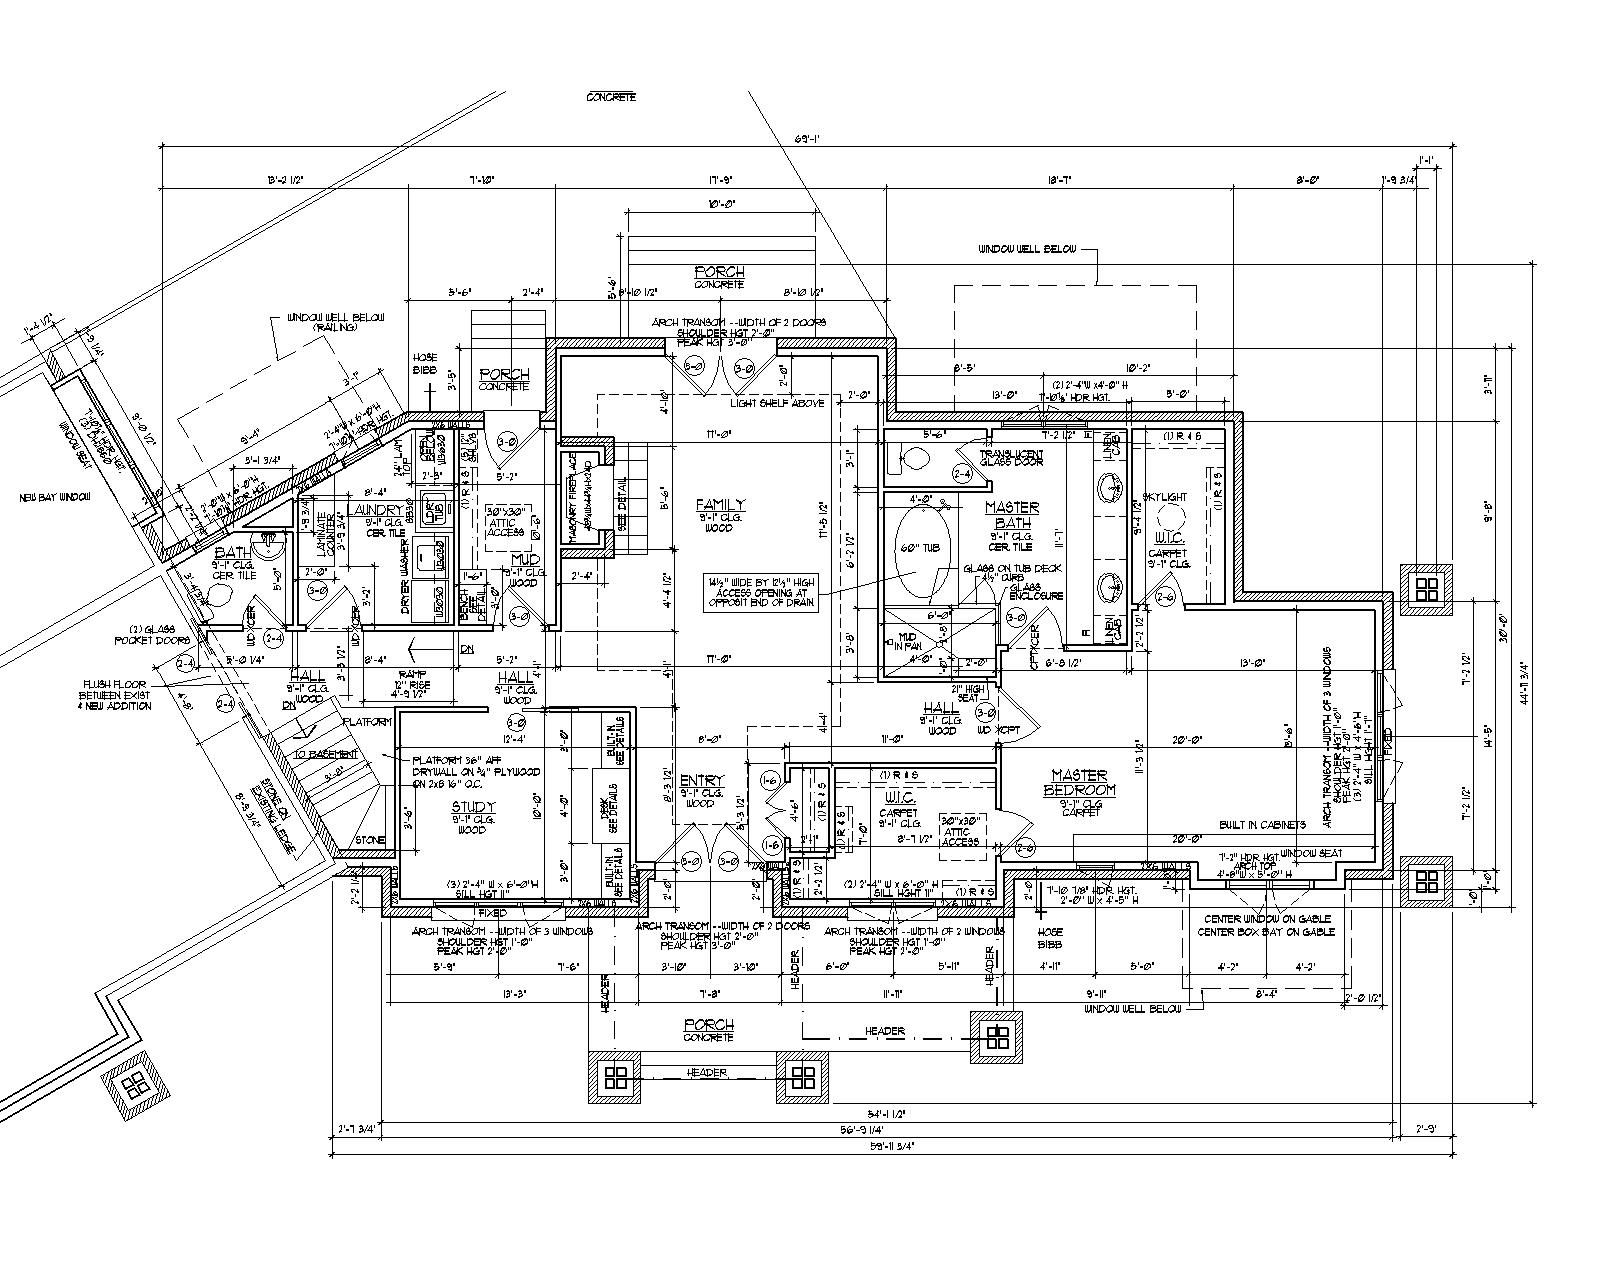 2d autocad house plans residential building drawings cad for Floor plan blueprint